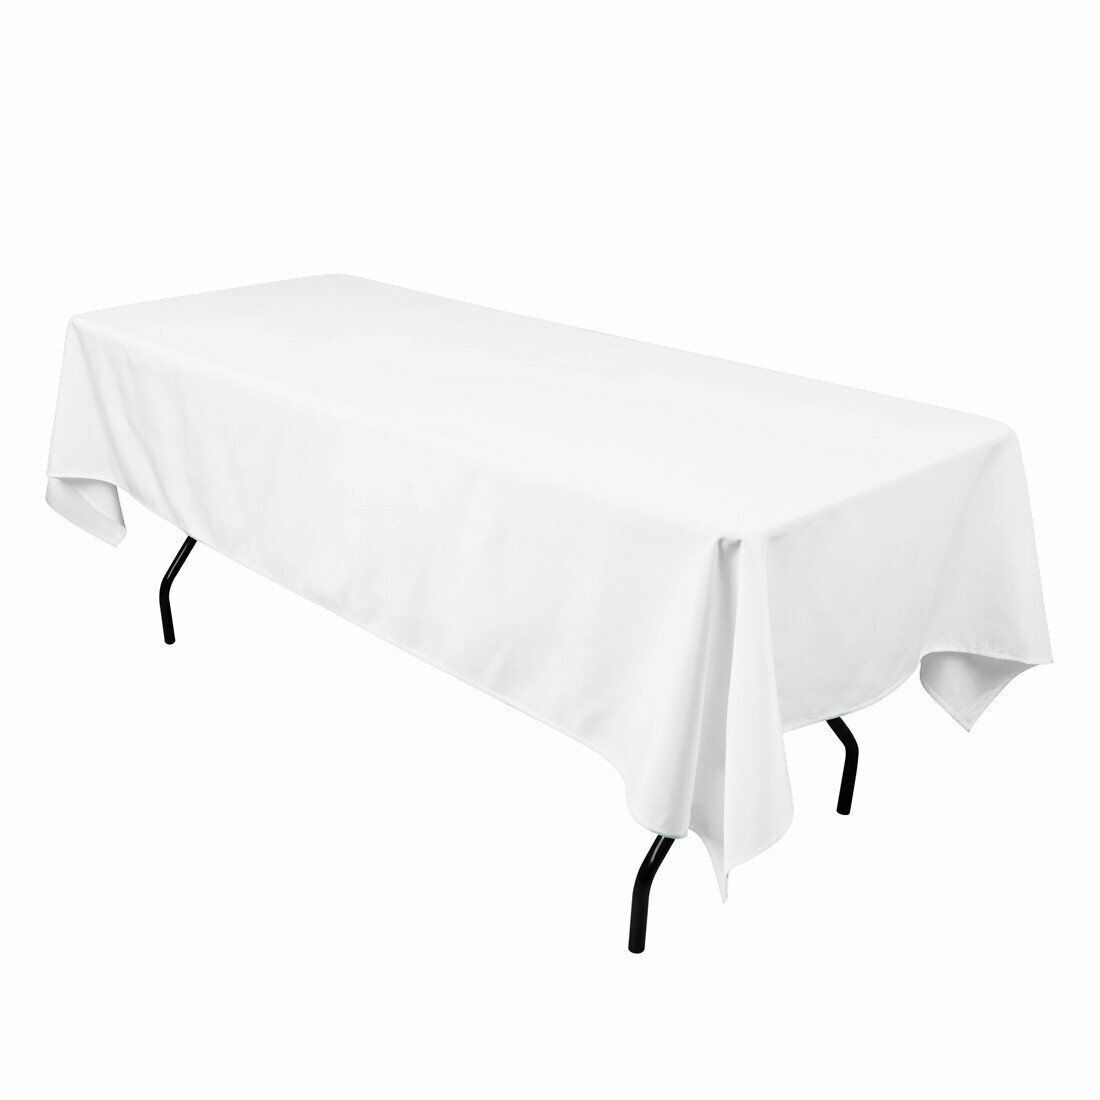 "Rectangle Tablecloth - 60 x 102"" Inch for 6 Foot Table in Po"